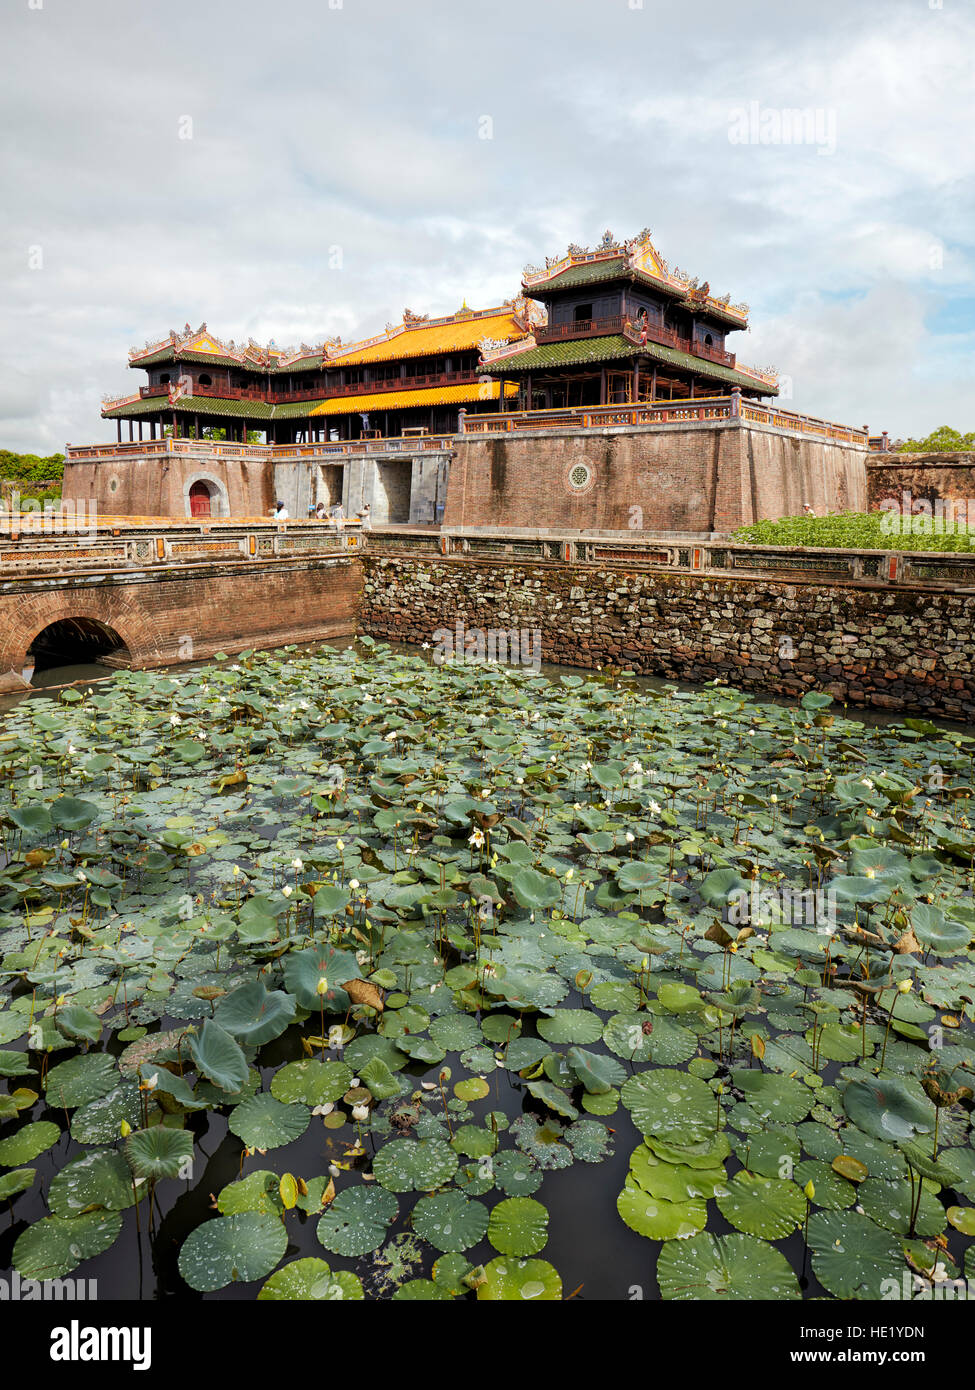 The Noon Gate (Ngo Mon). Imperial City, Hue, Vietnam. - Stock Image